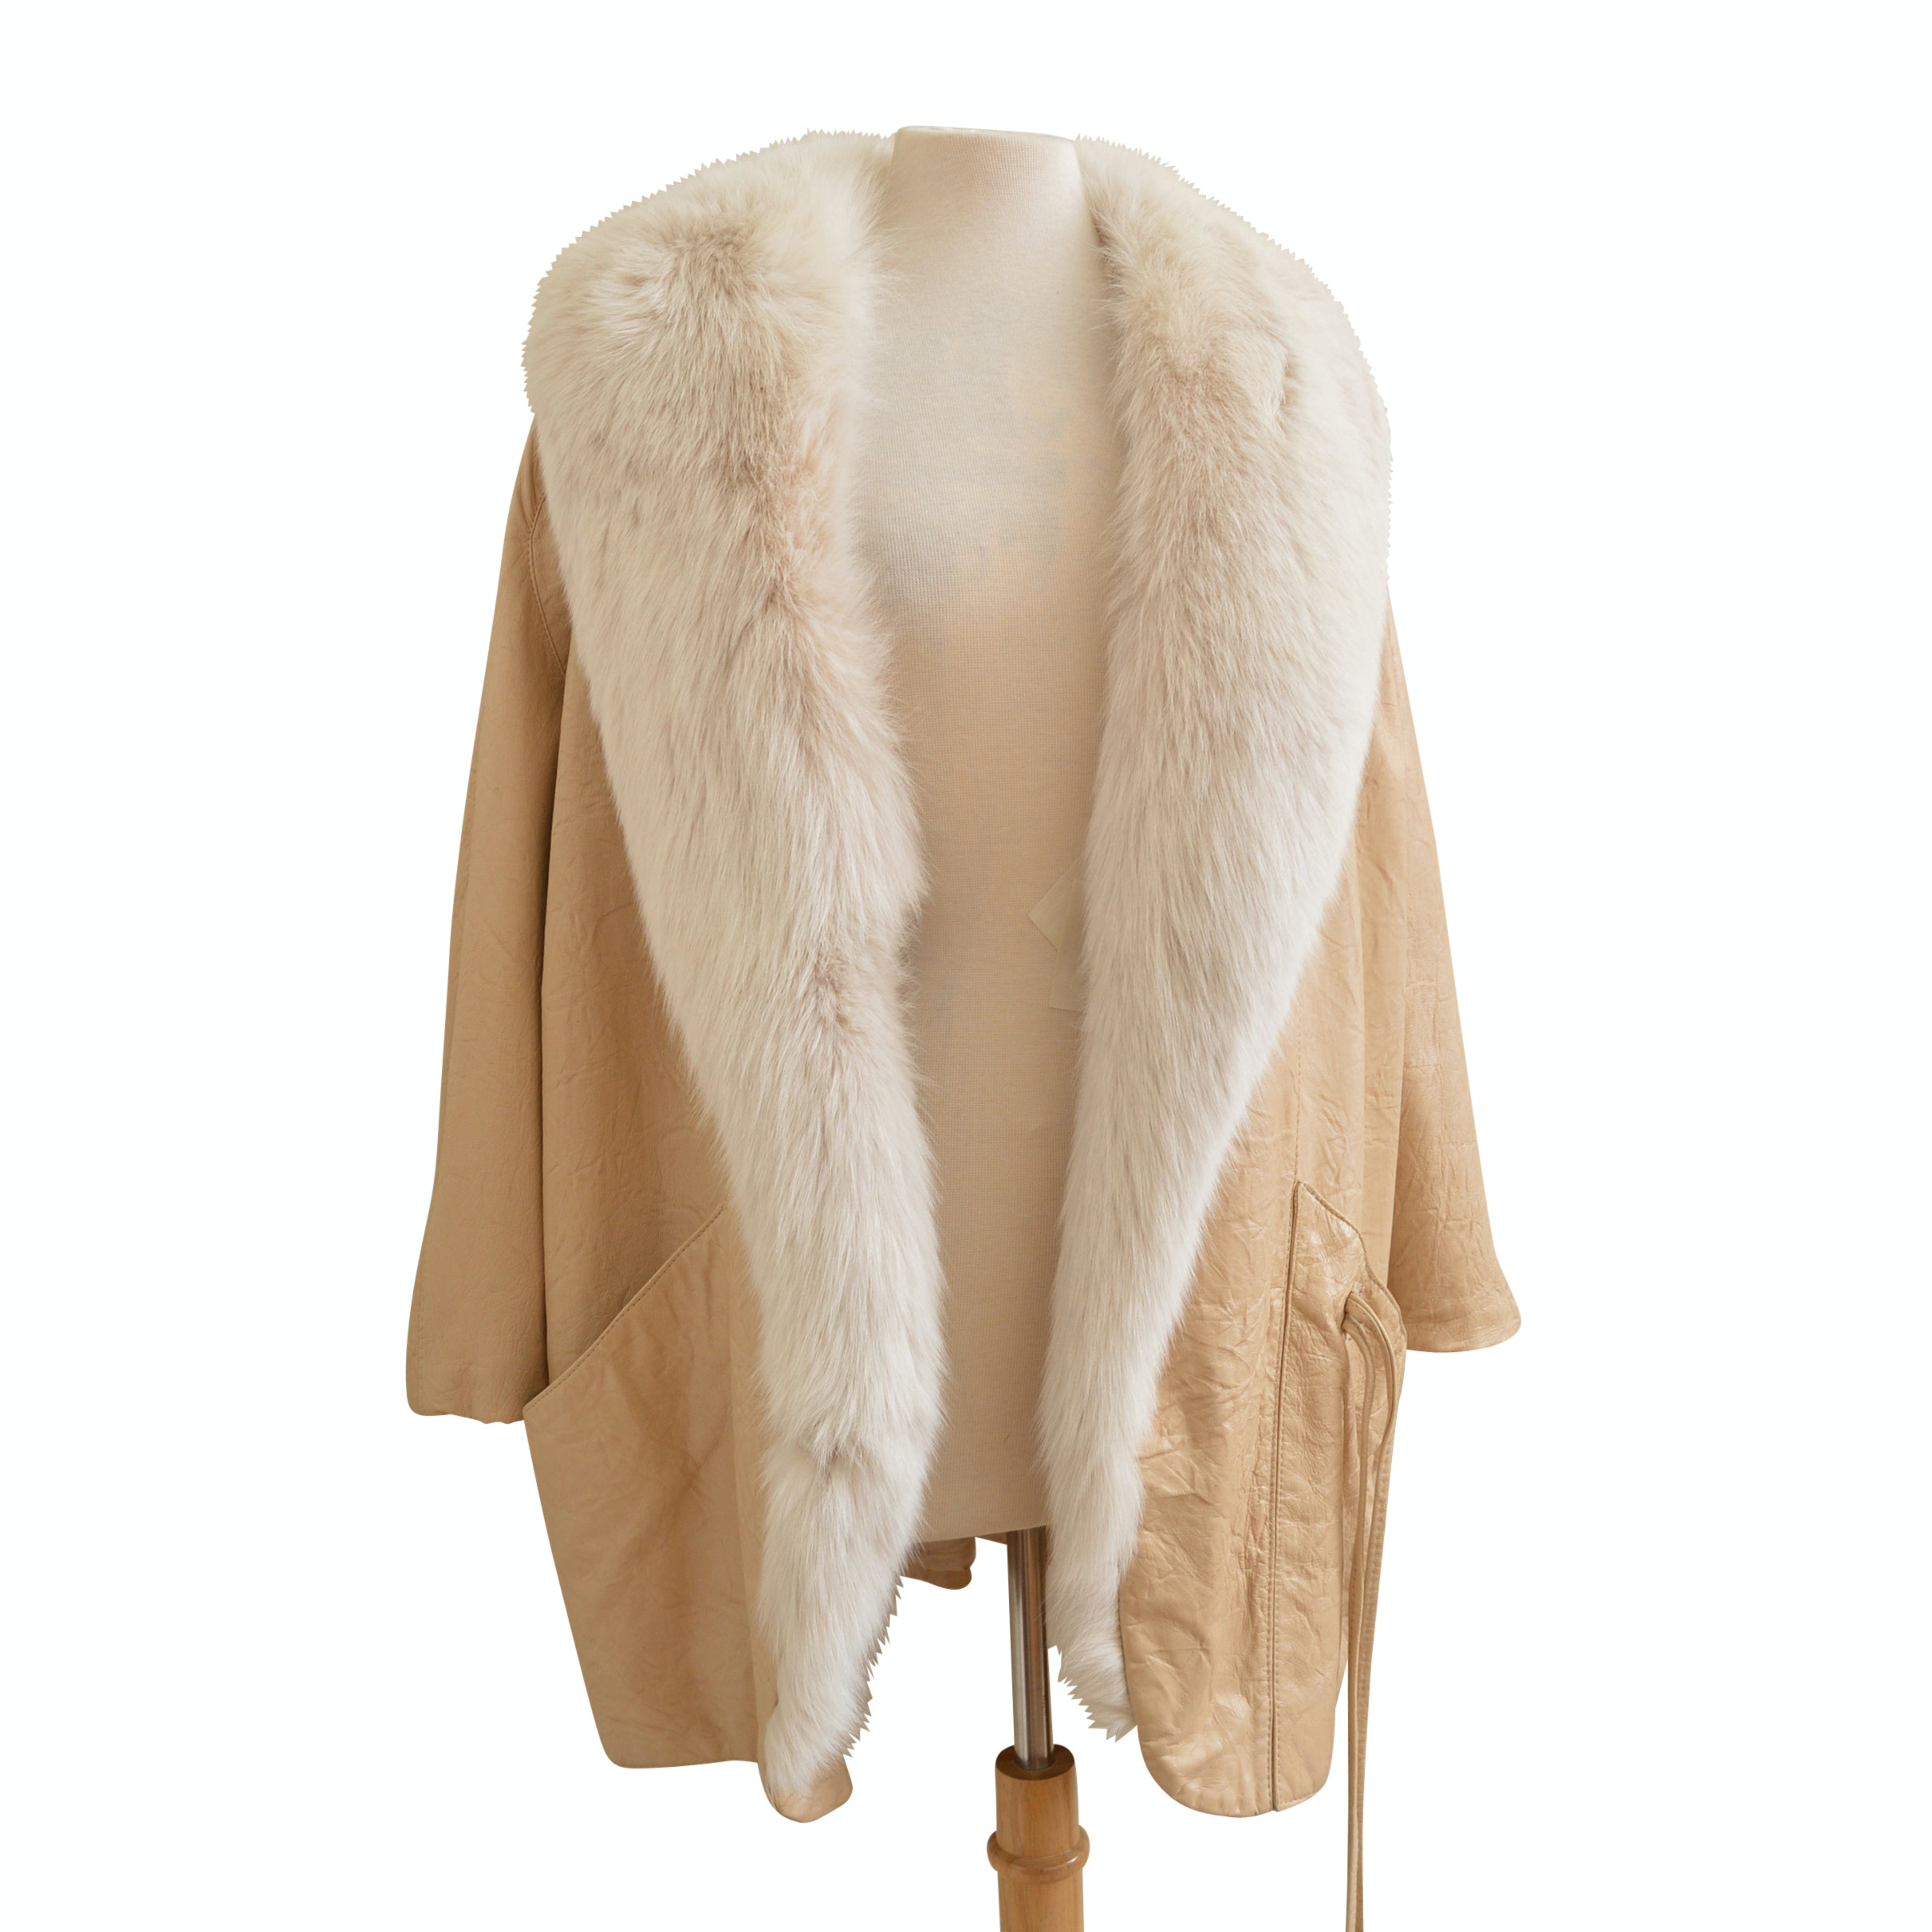 Vintage Marvin Richards Beige Leather Coat with Fox Fur Collar